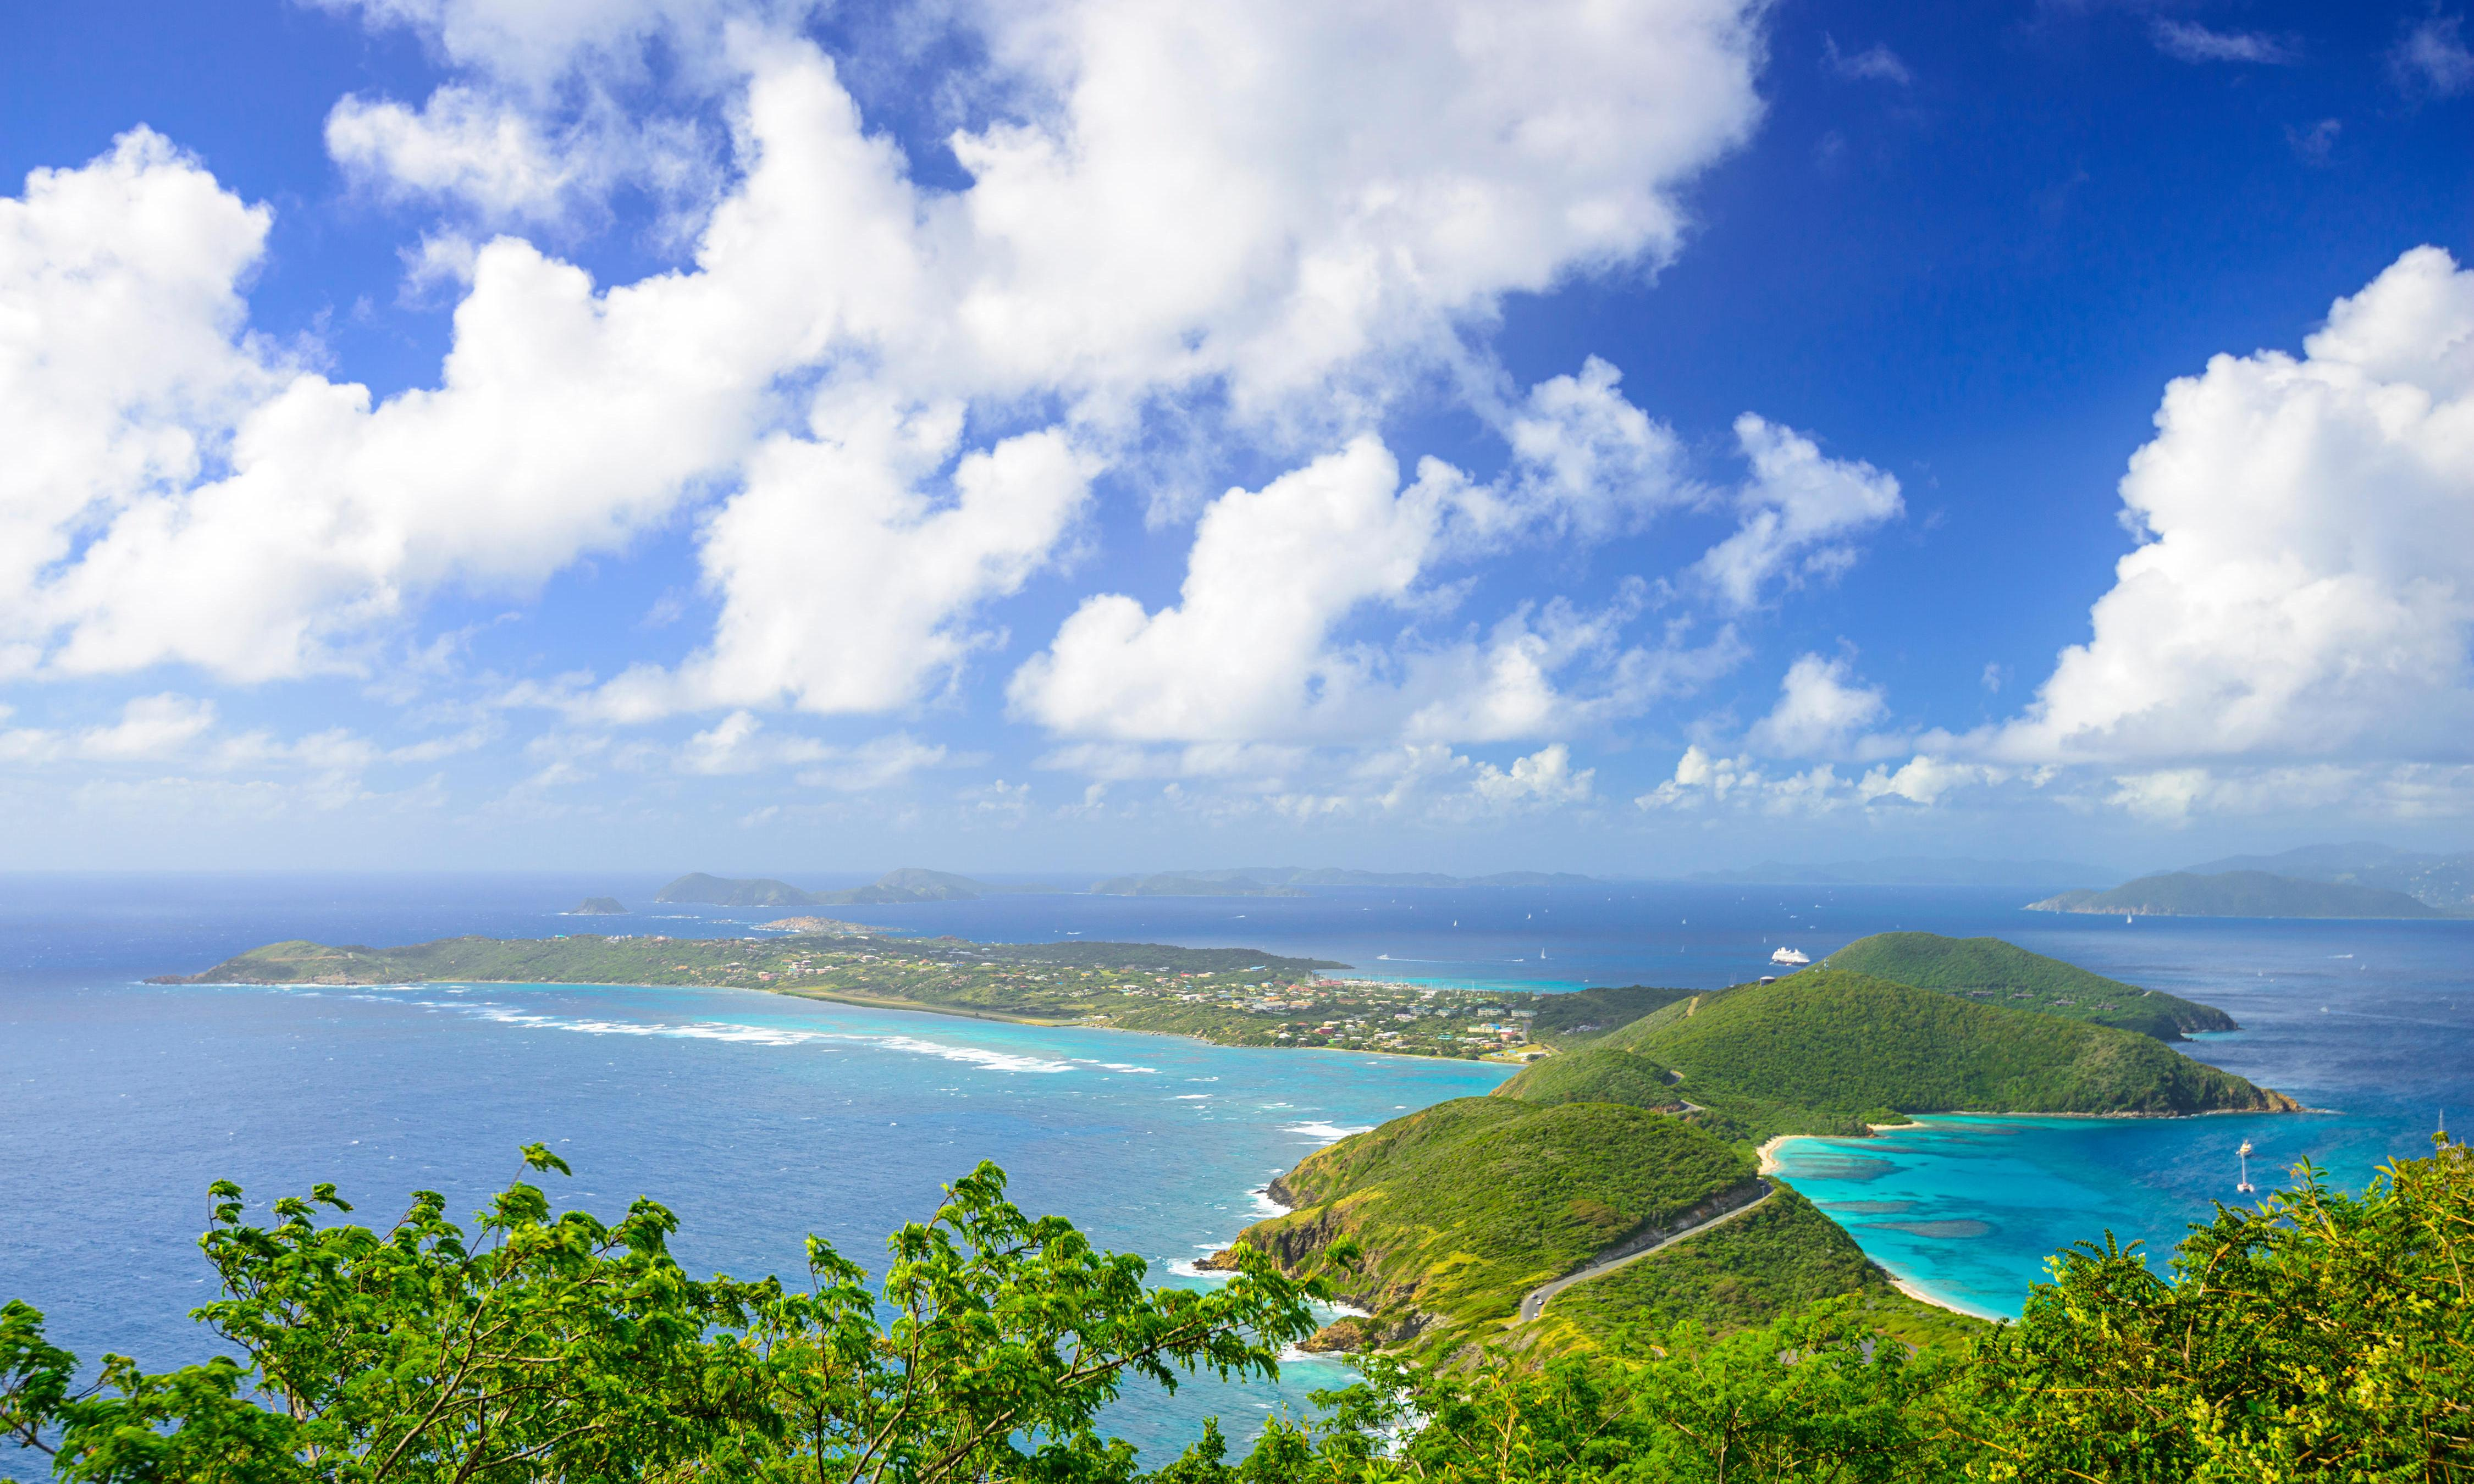 Delay to tax havens' public registers 'risks national security'